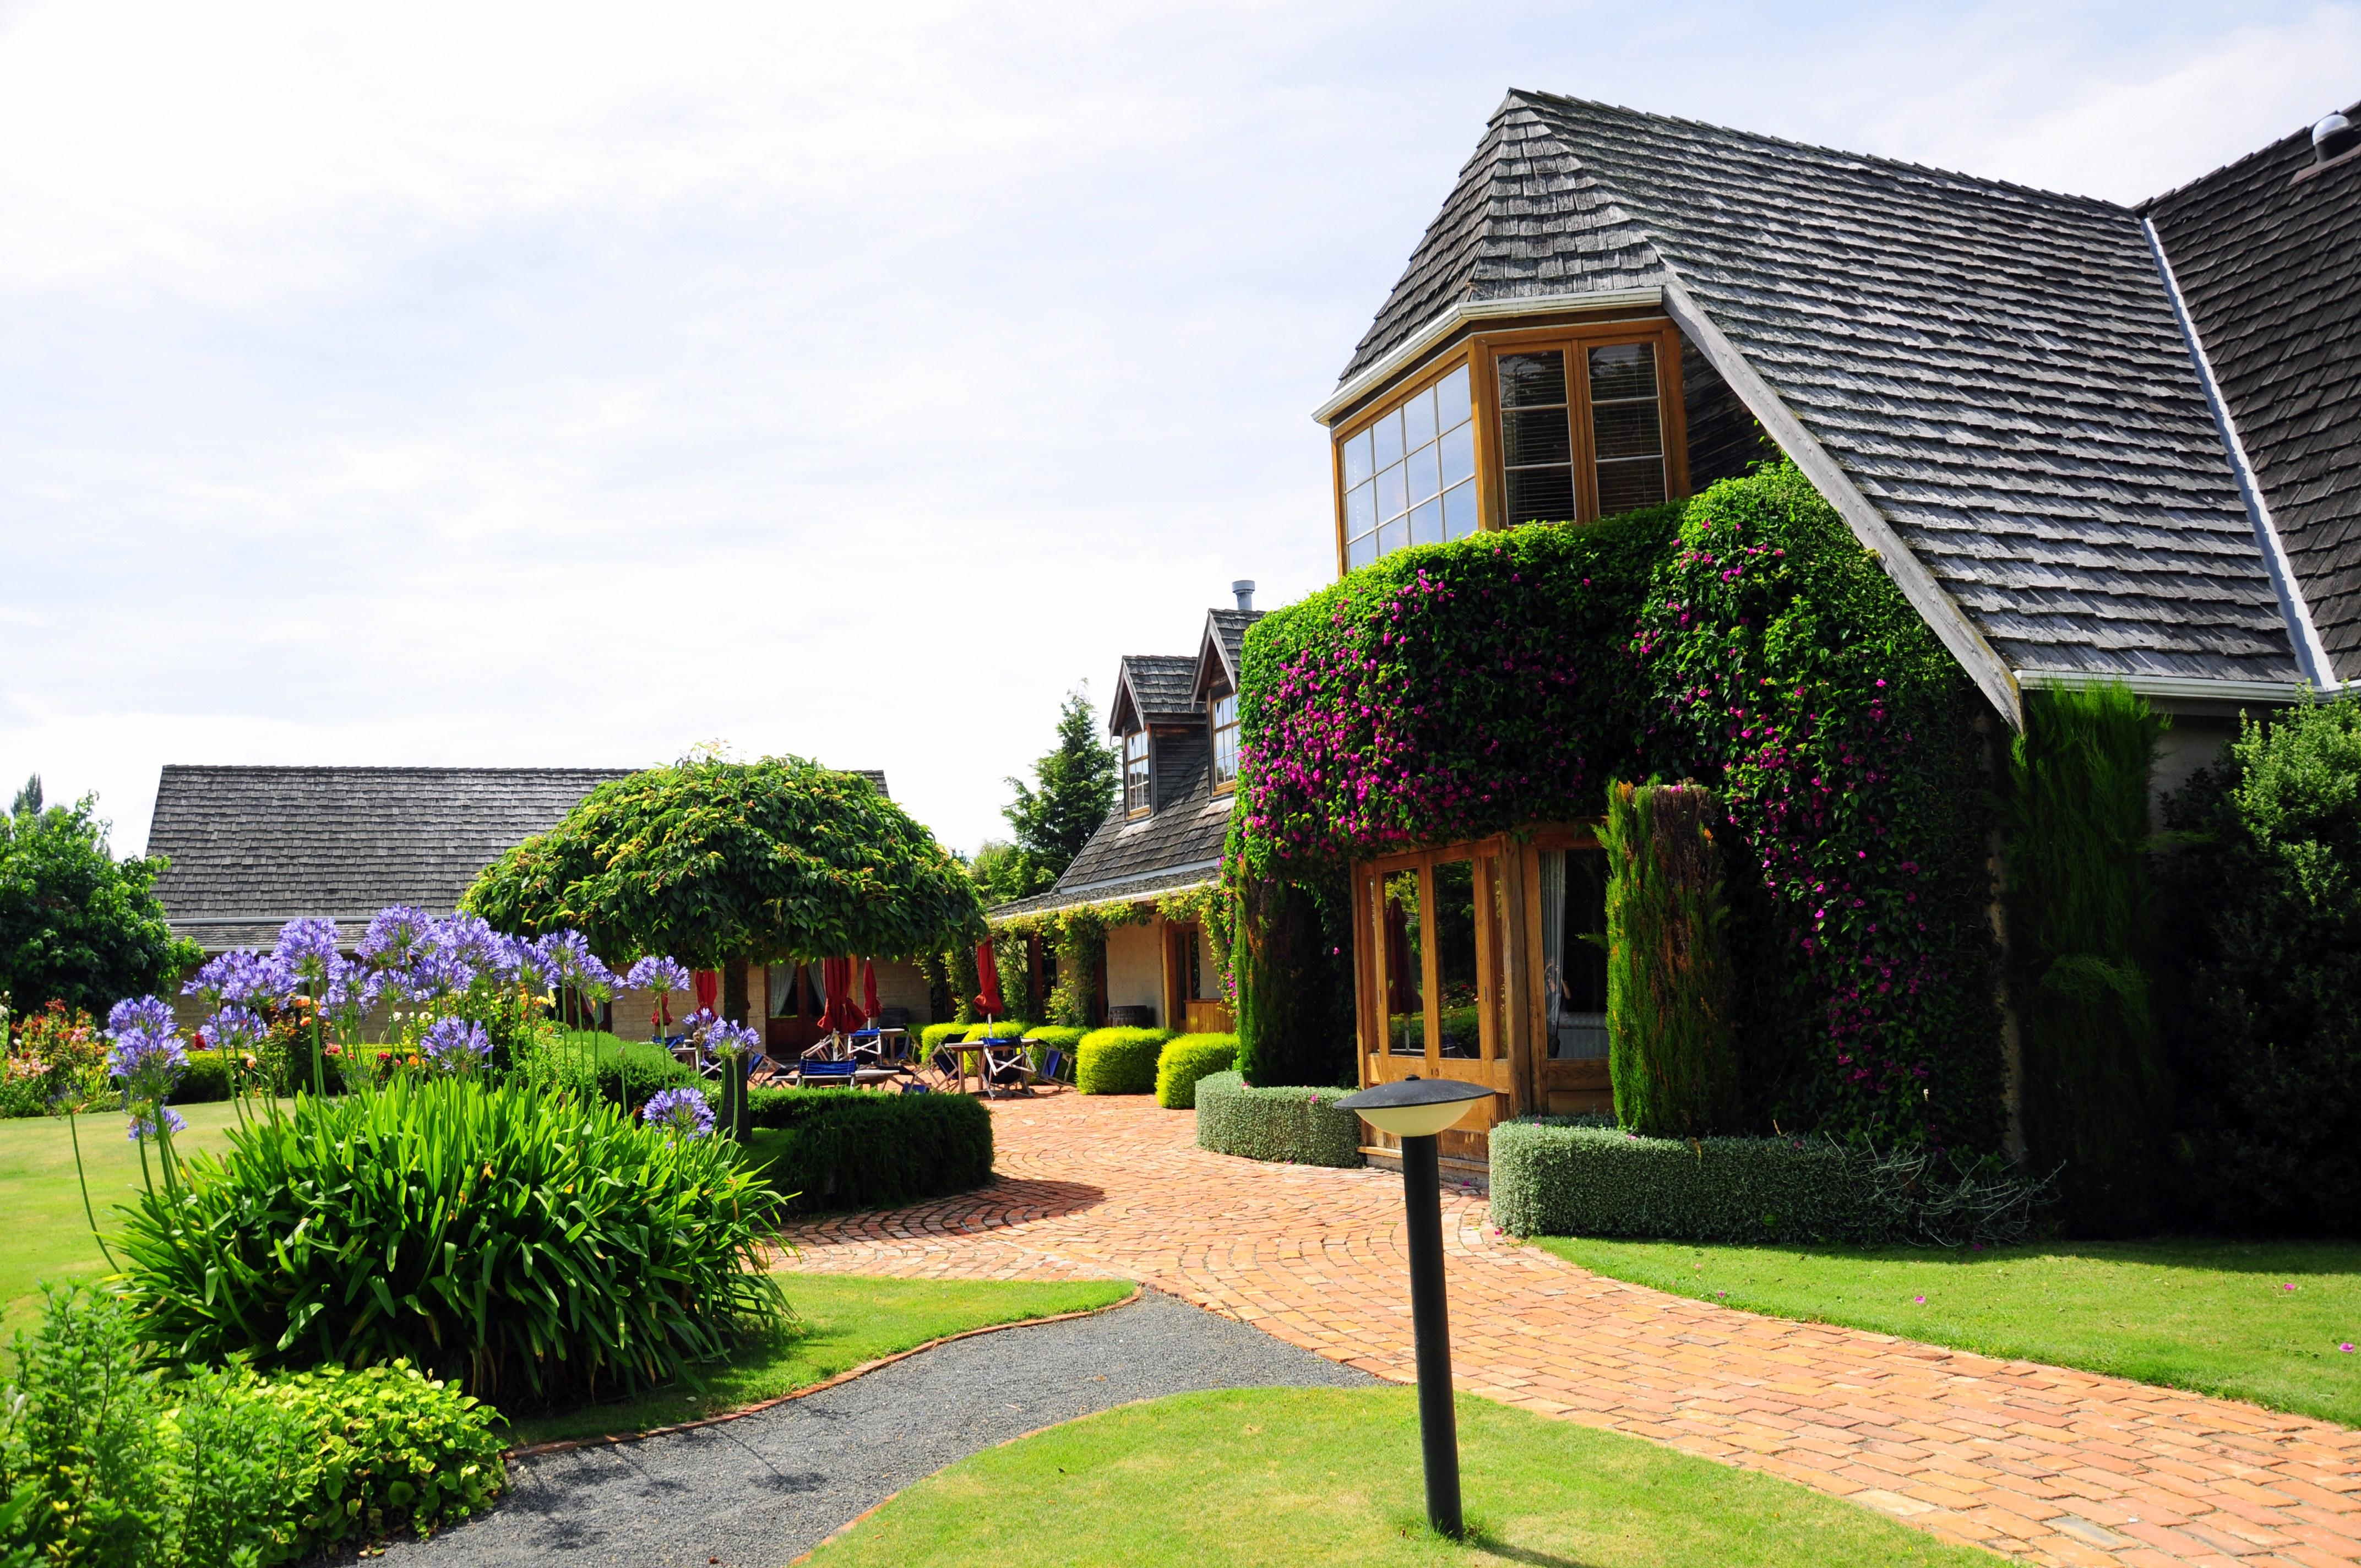 Fyffe Country Lodge